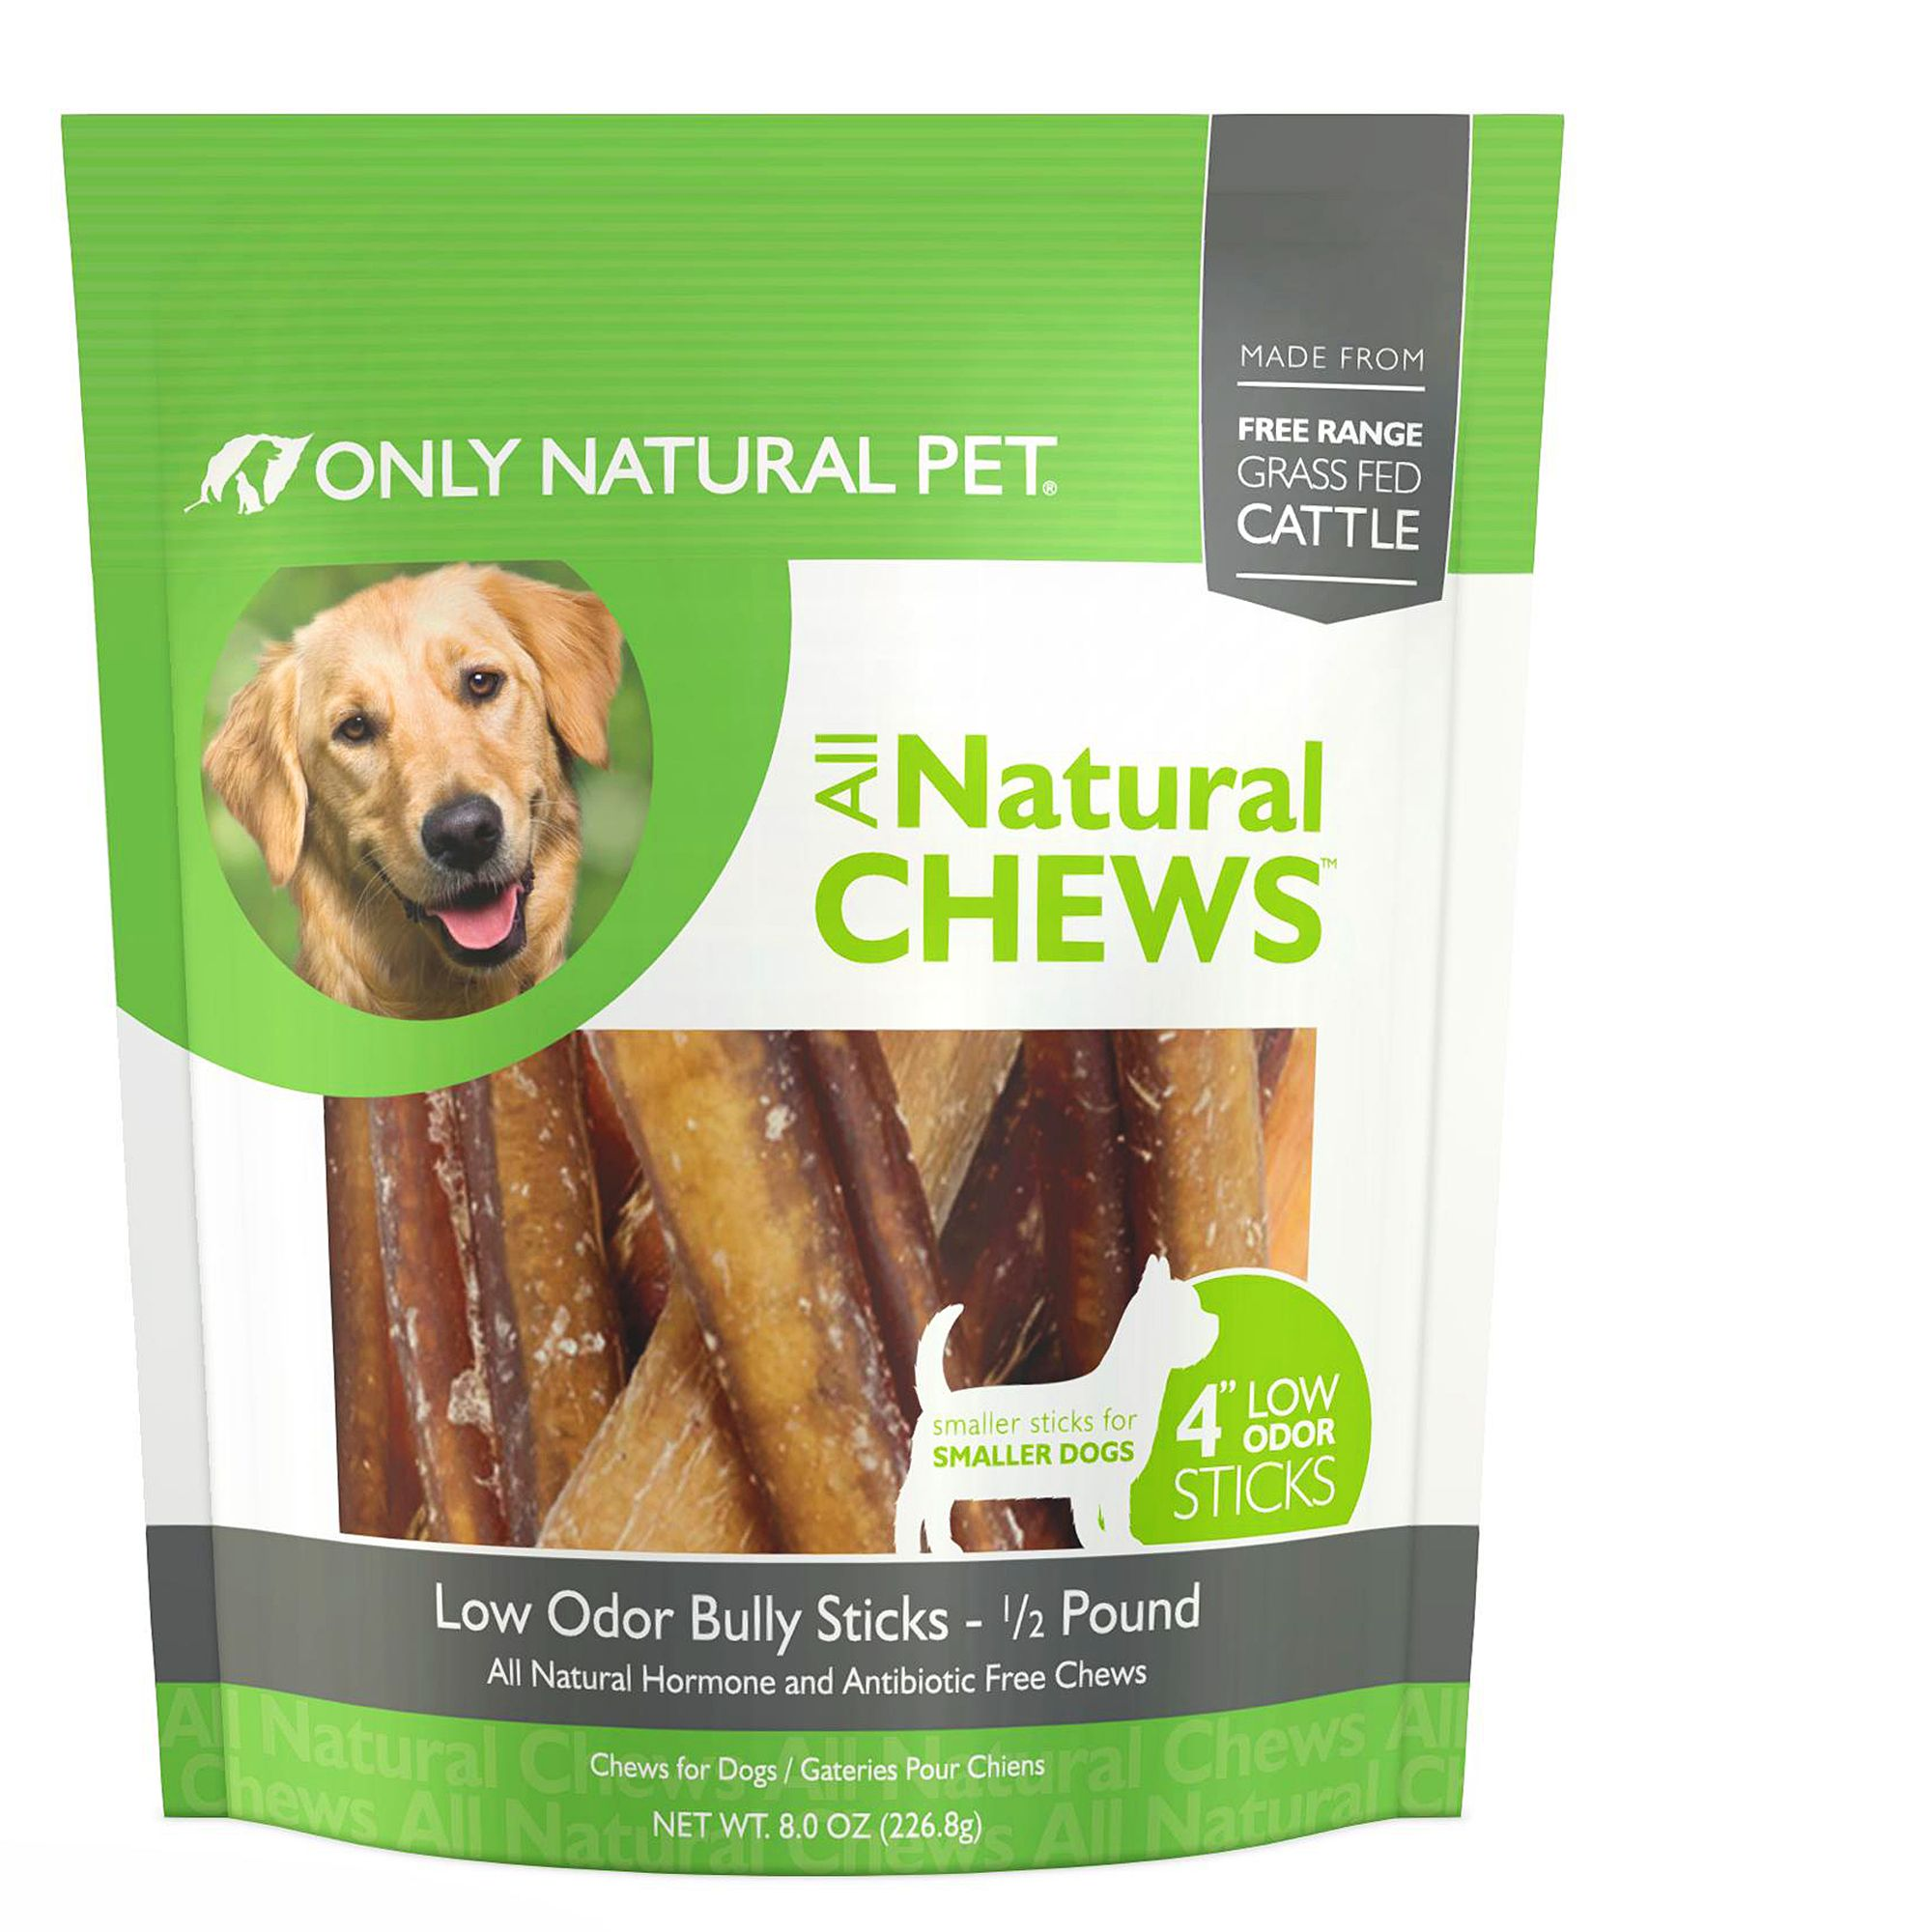 only natural pet all natural chews low ordor 4 bully sticks dog treat size 8 oz beef. Black Bedroom Furniture Sets. Home Design Ideas